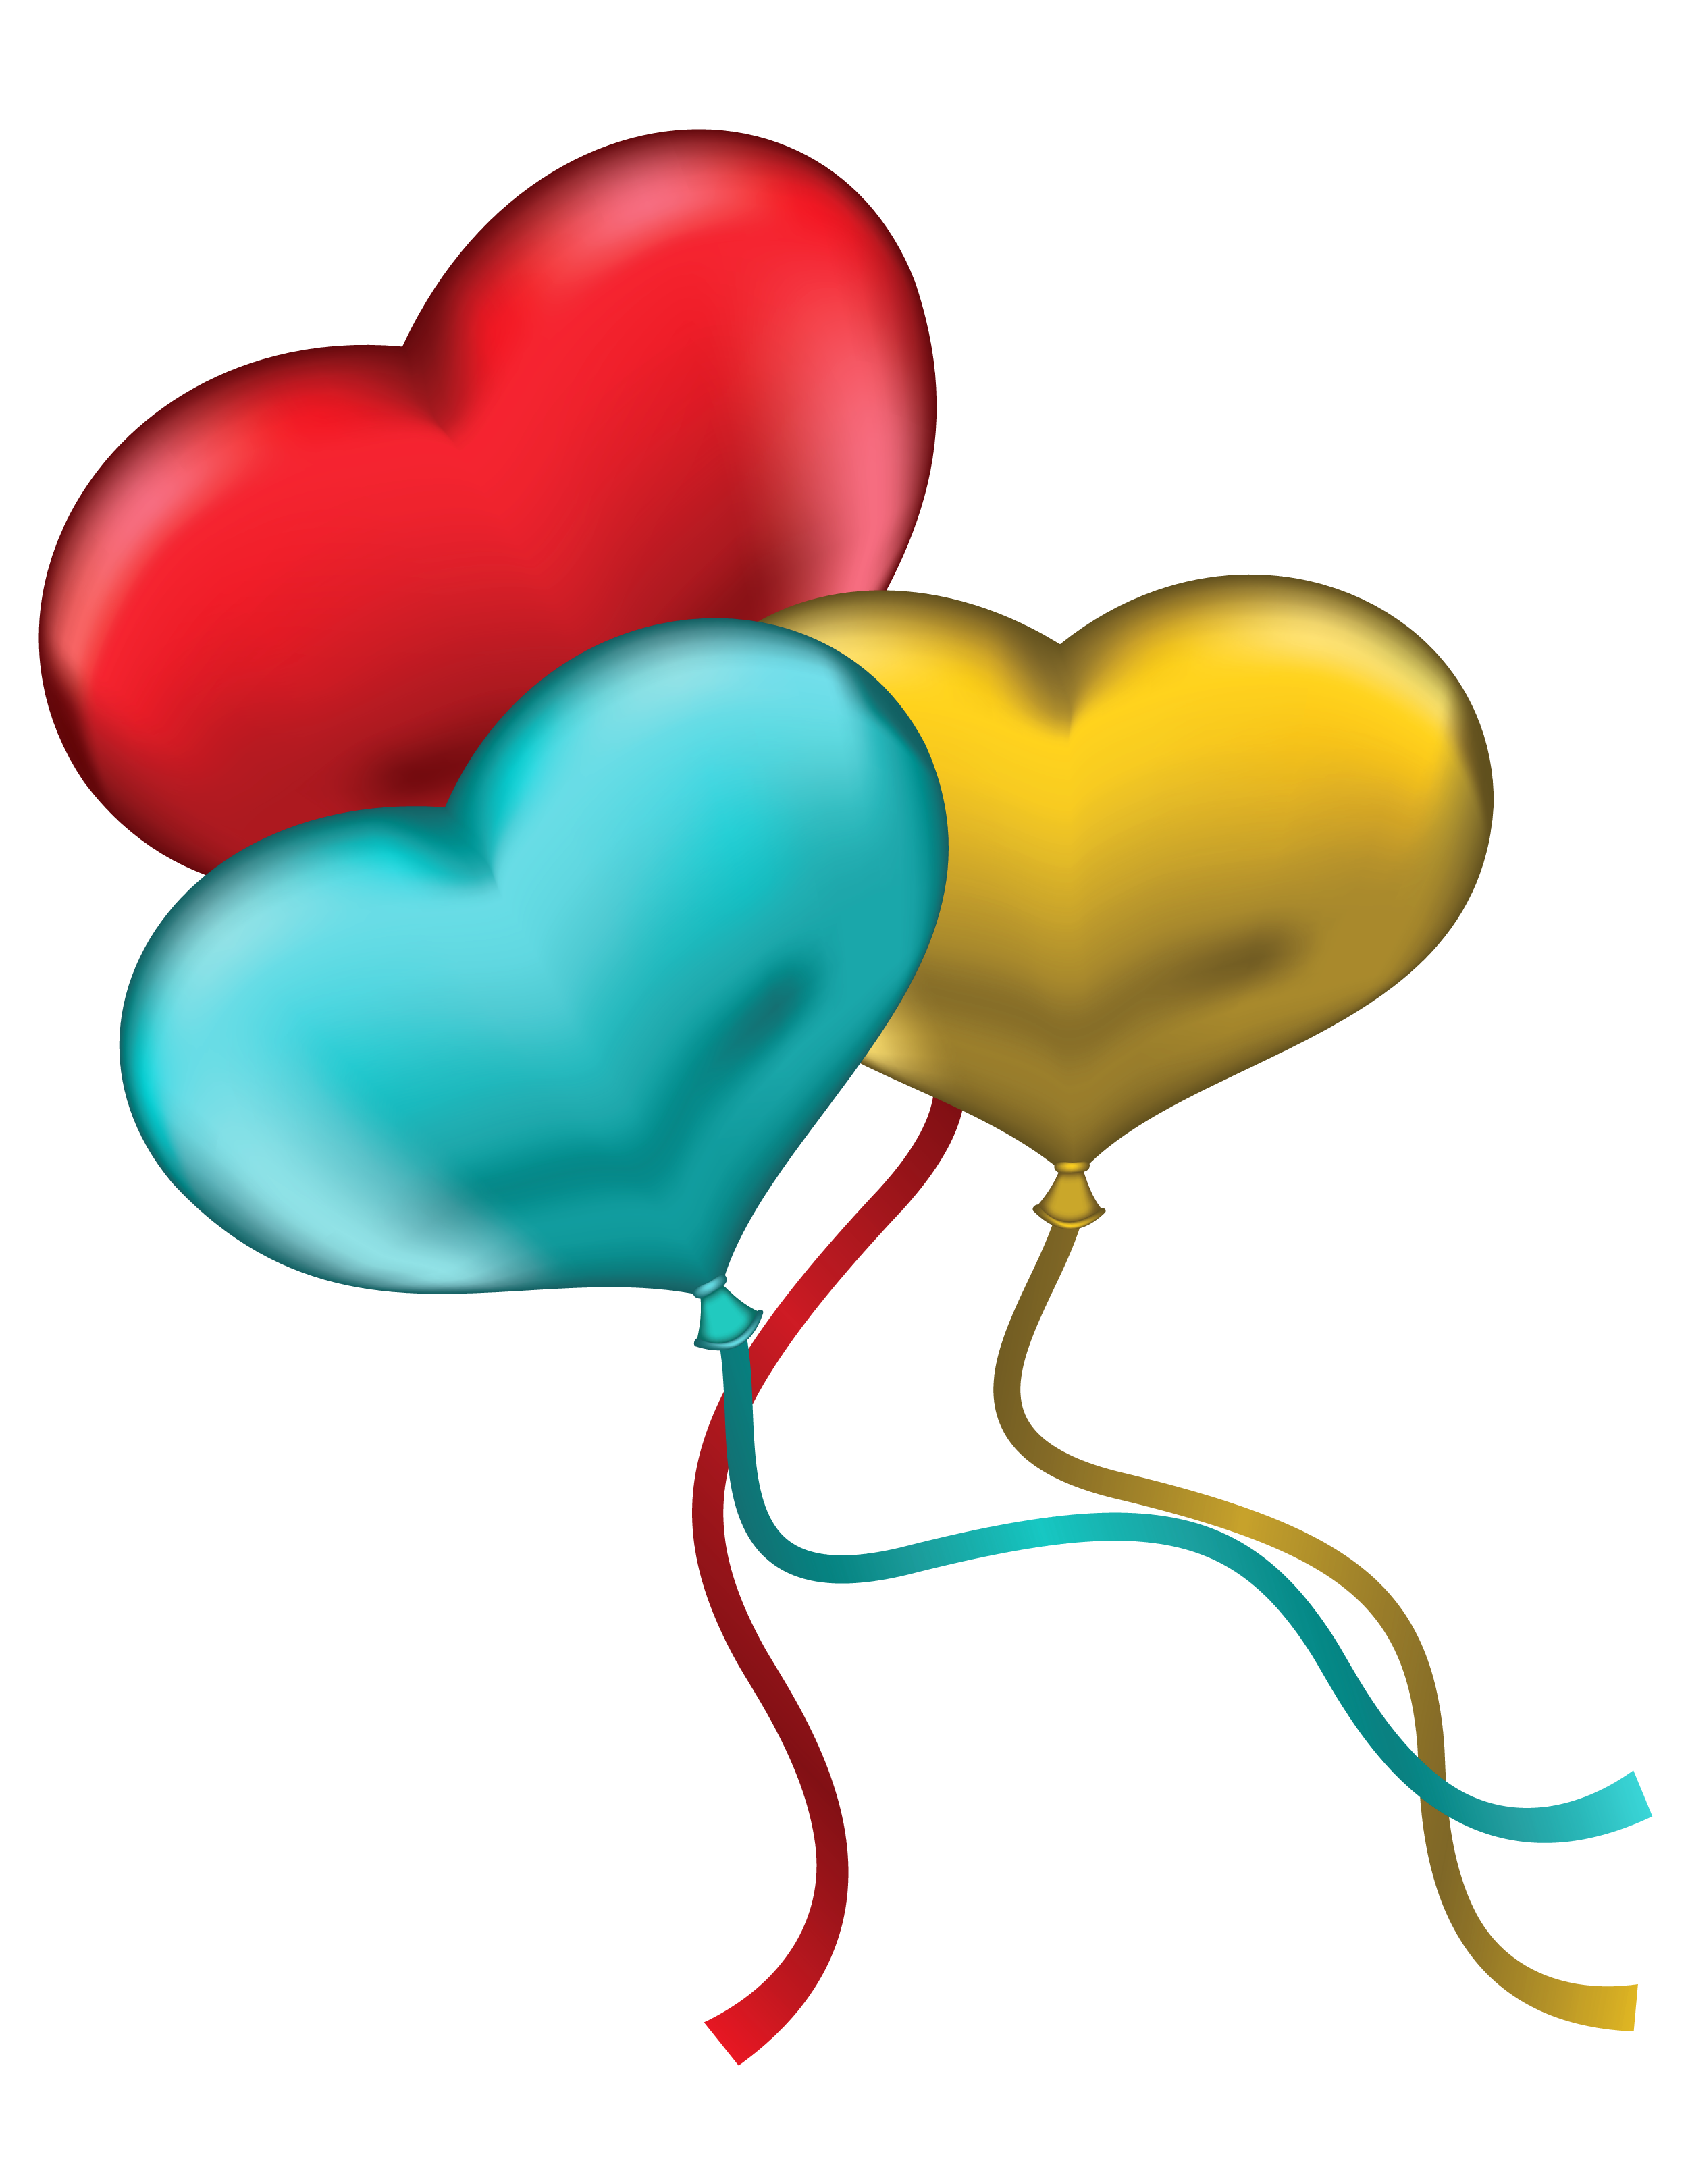 Four clipart birthday baloon. Red yellow and blue